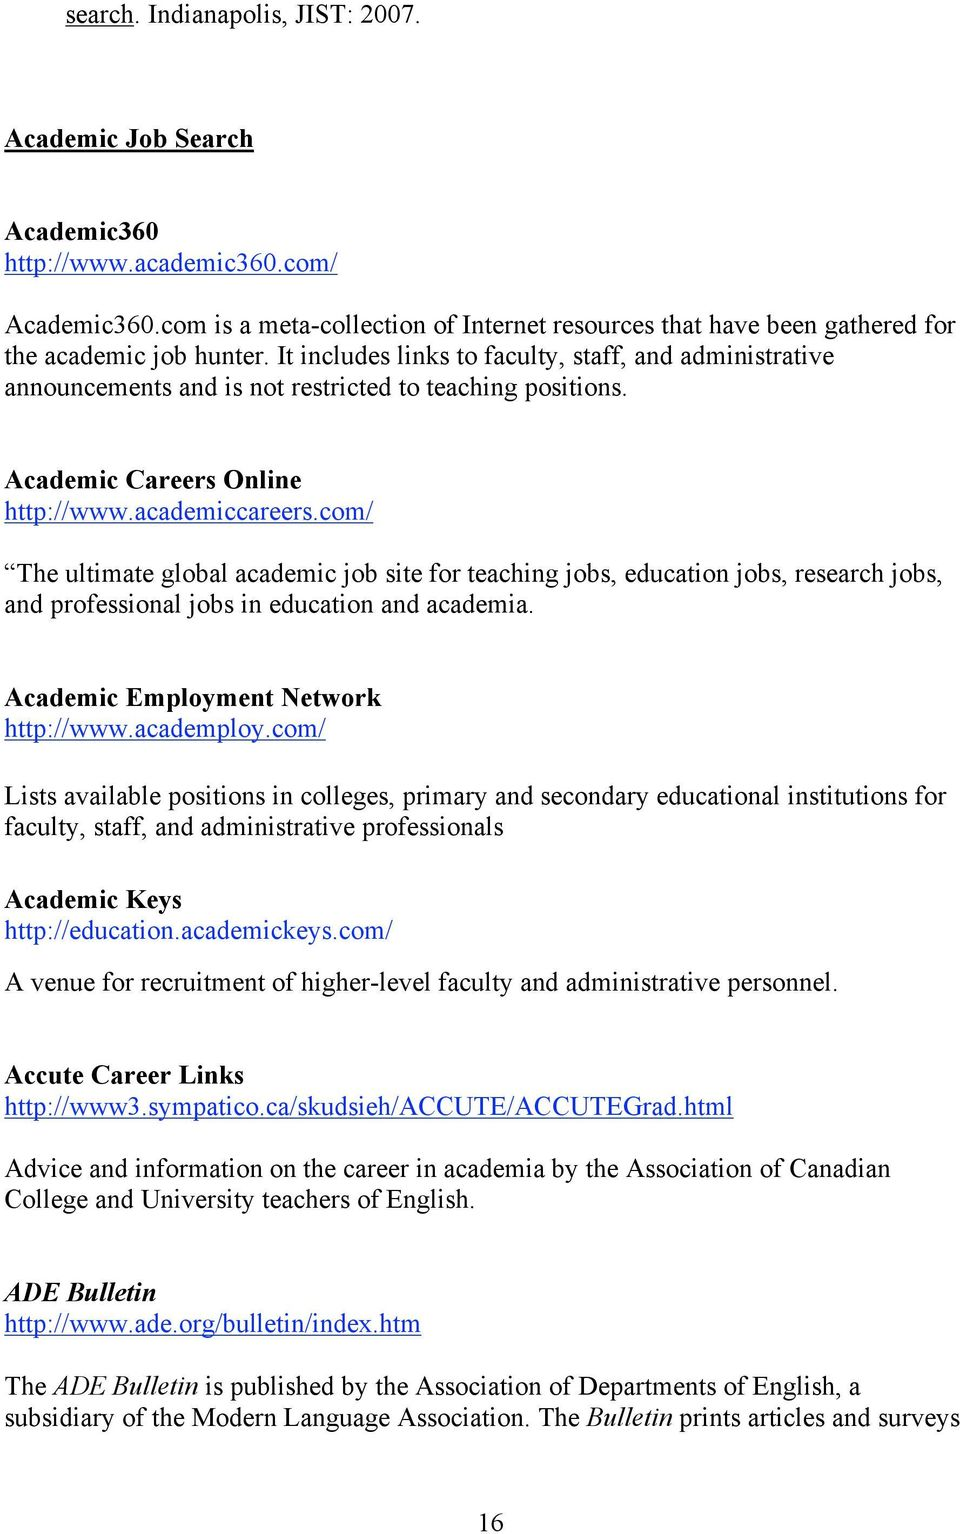 It includes links to faculty, staff, and administrative announcements and is not restricted to teaching positions. Academic Careers Online http://www.academiccareers.